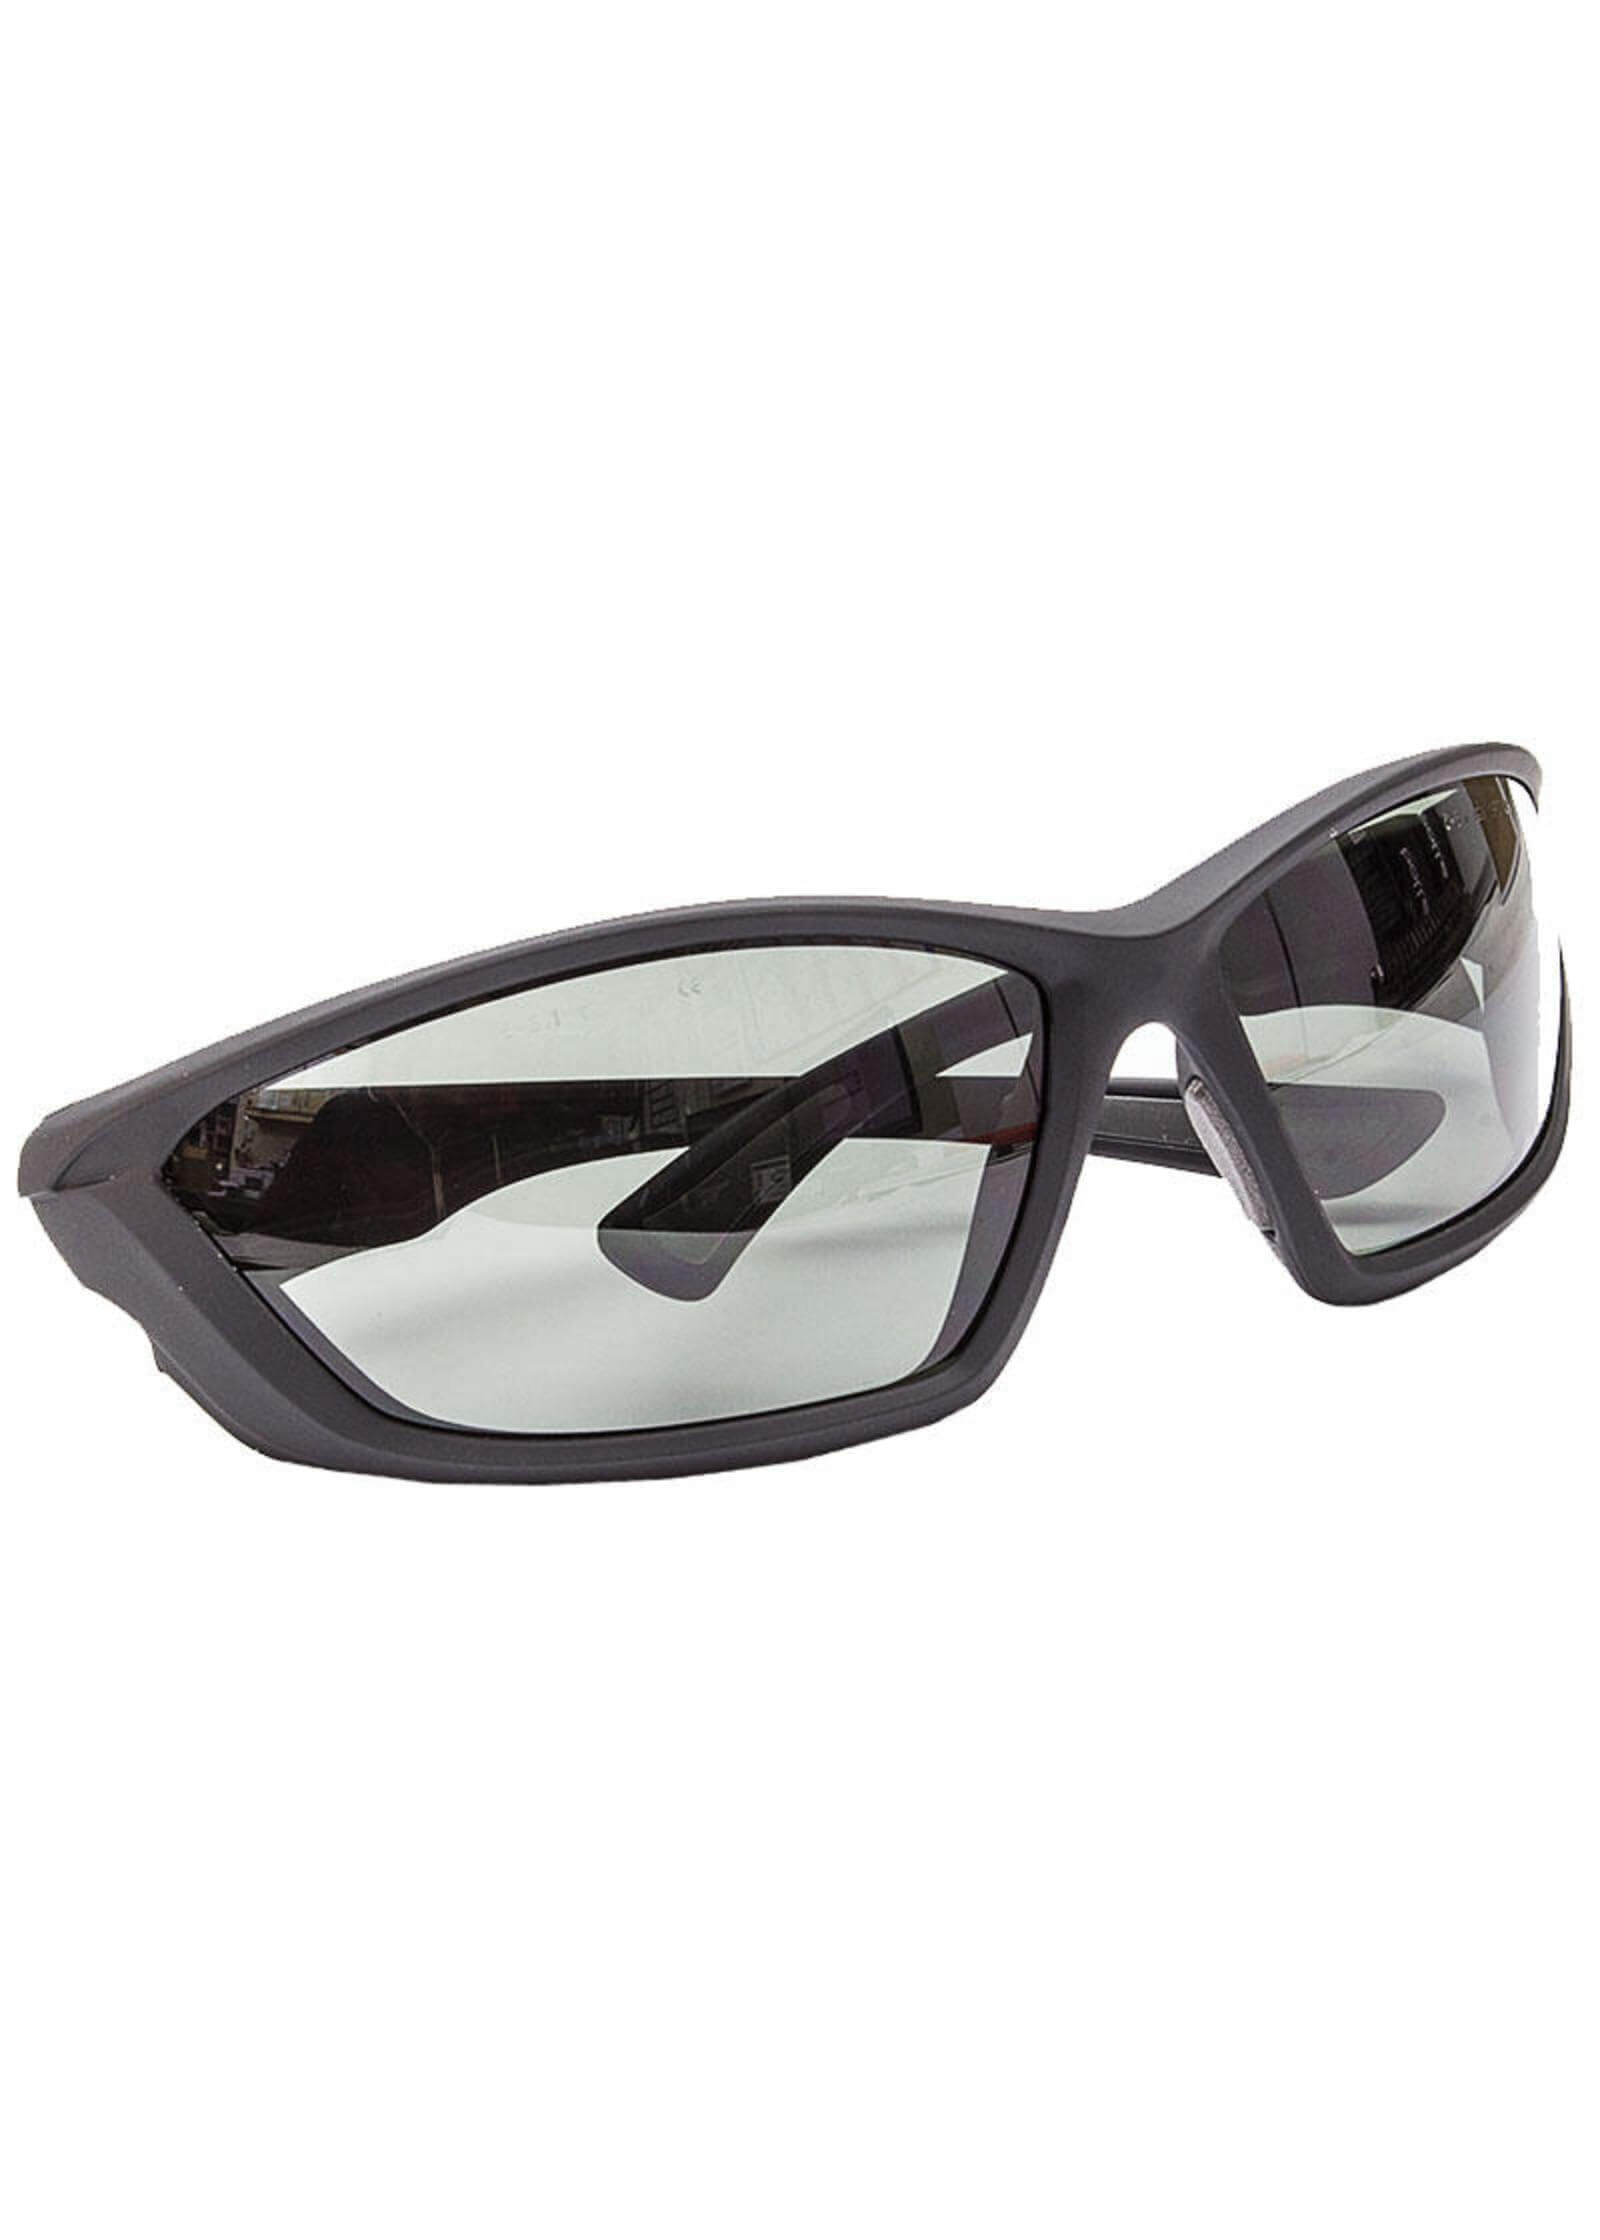 BOLLE Tactical - SWAT Polarised Ballistic Airsoft Safety Glasses eeae1dff67